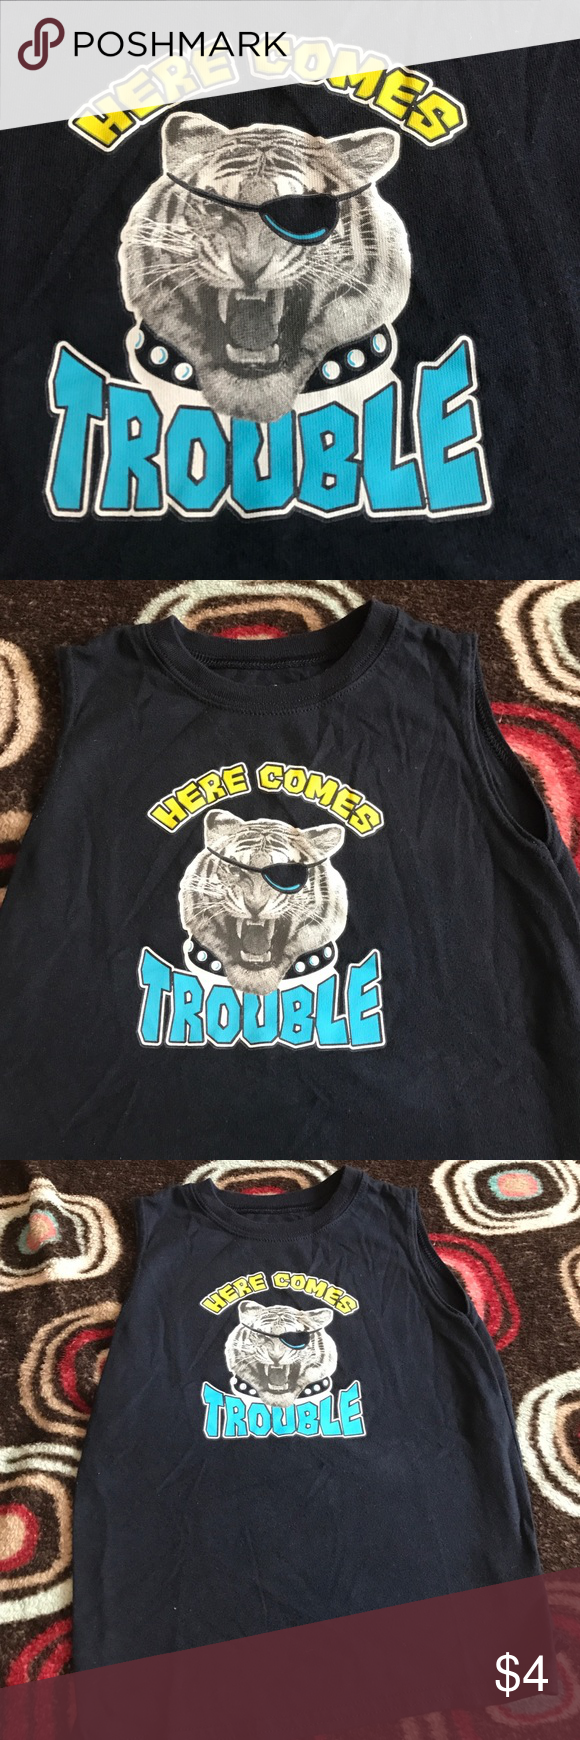 Tank Navy blue tank with tiger decal Shirts & Tops Tank Tops